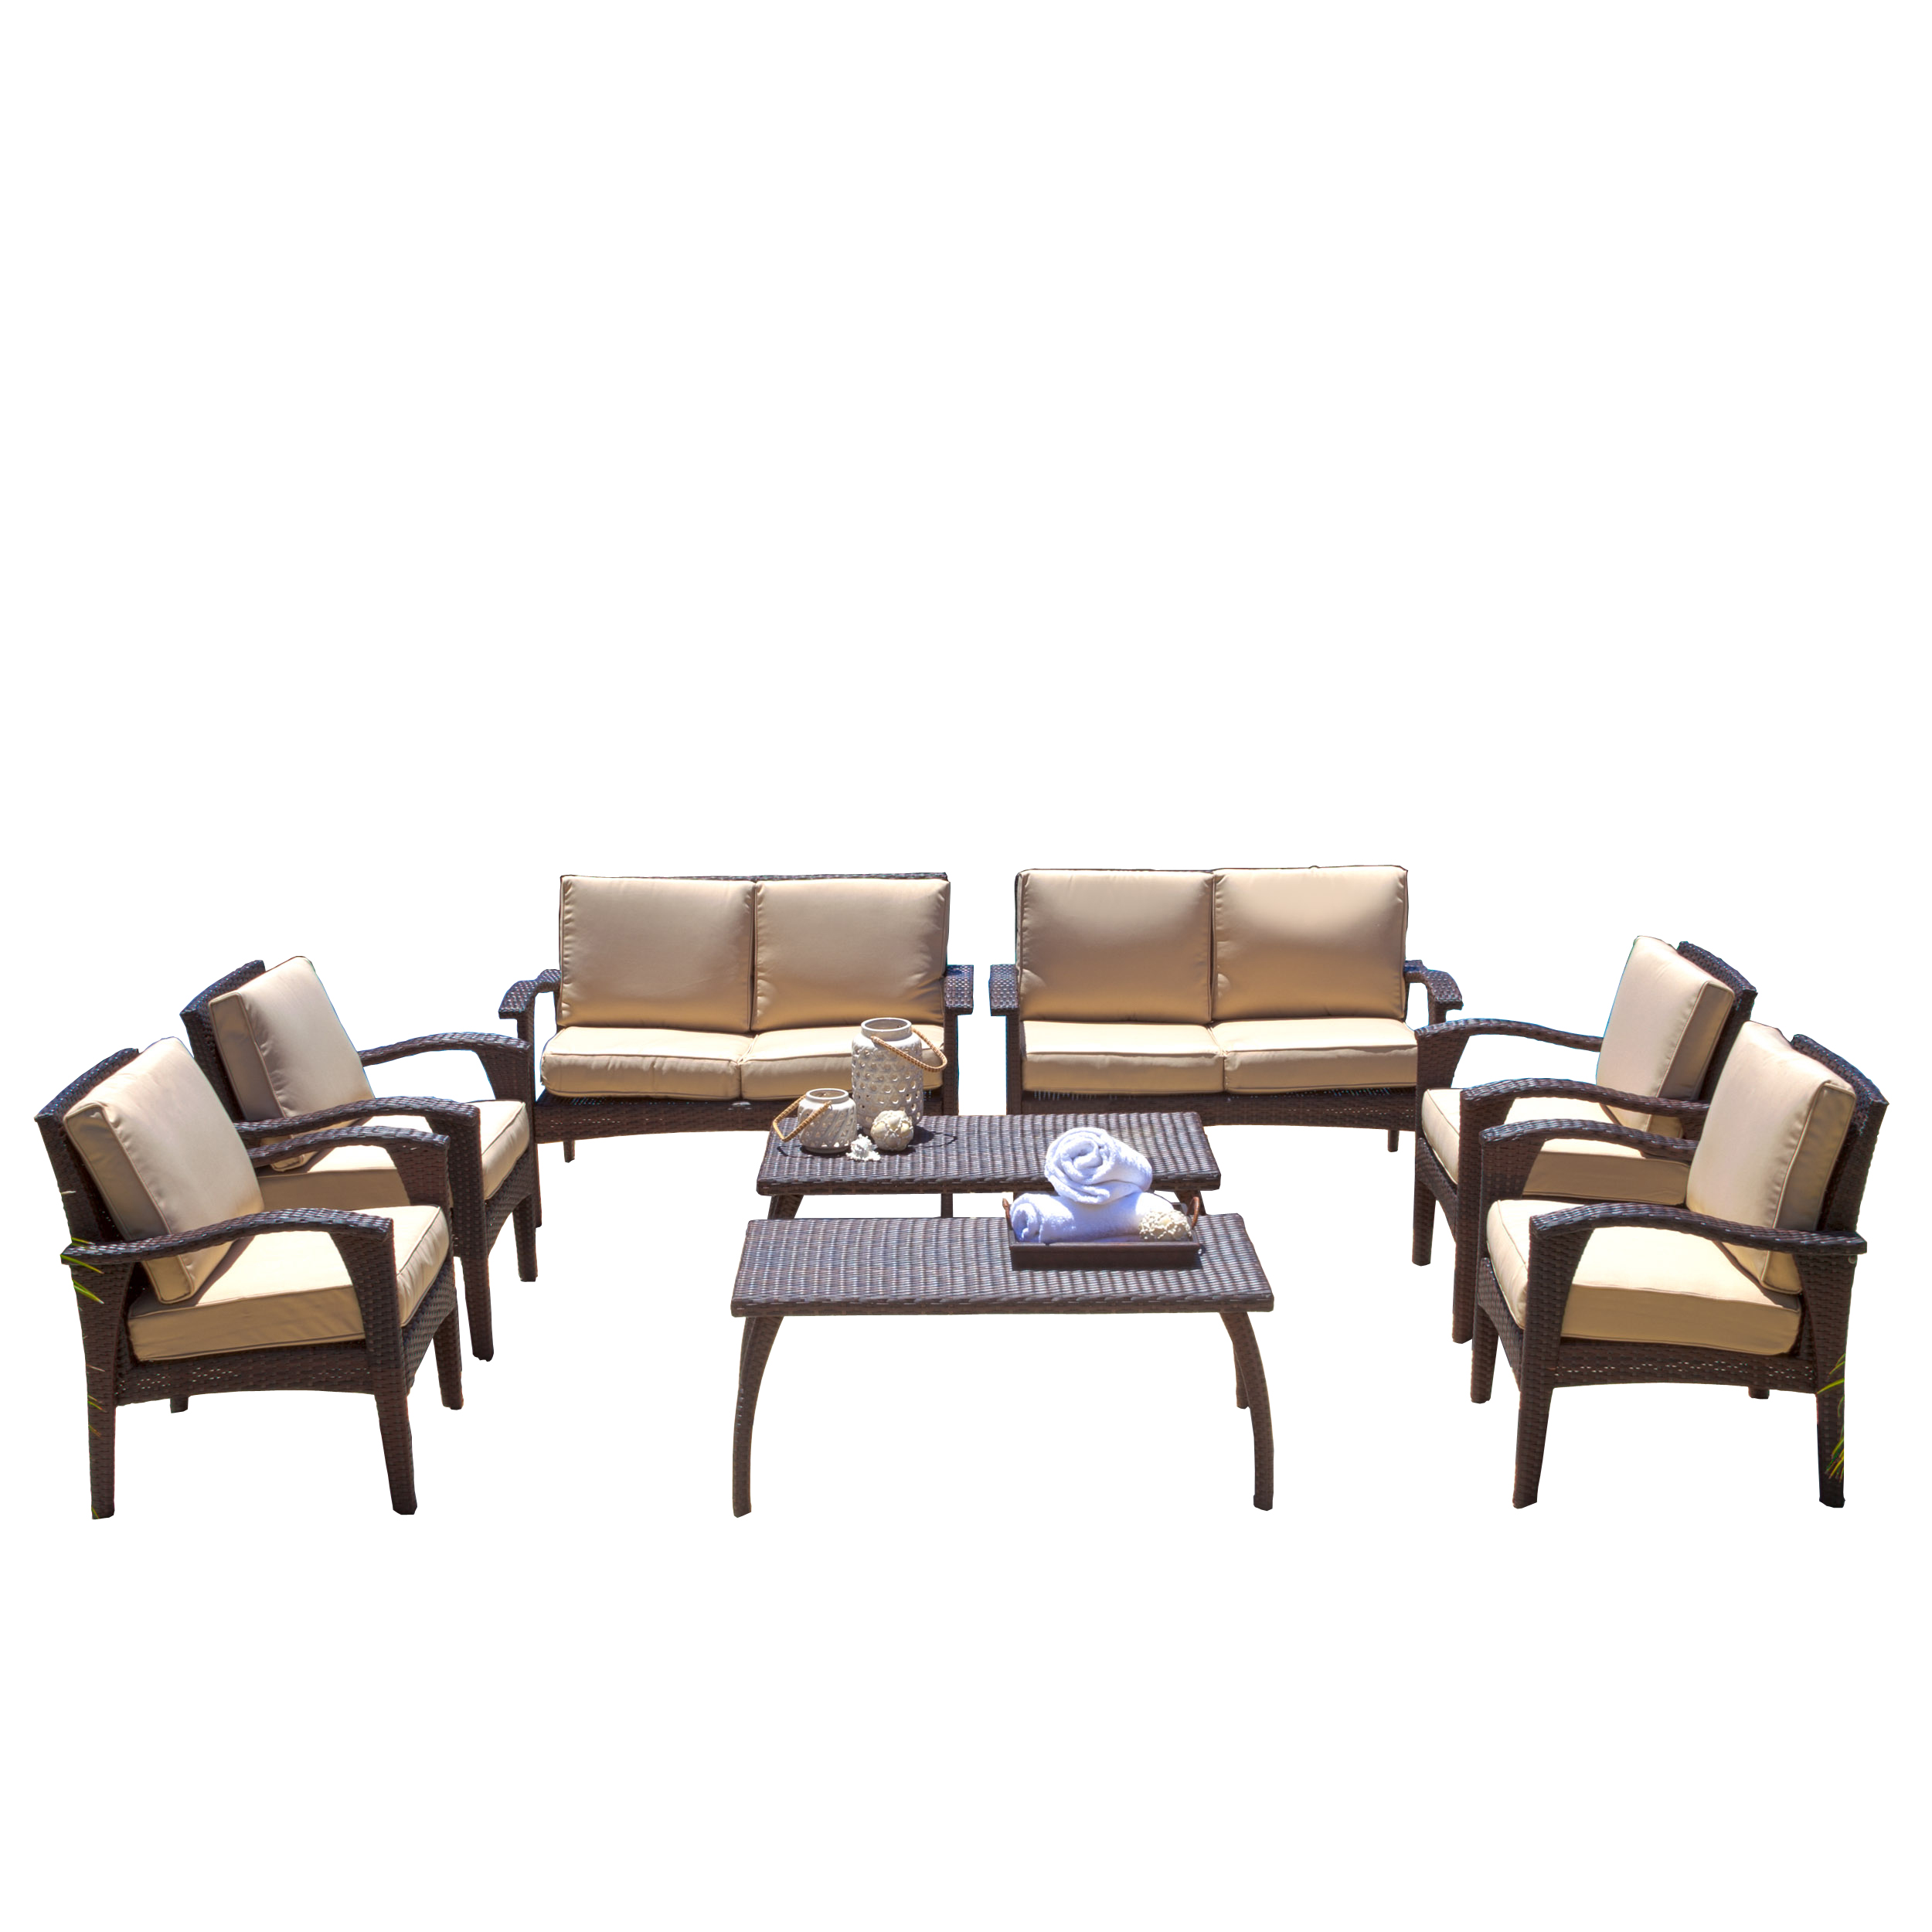 Amos Outdoor 8pc Brown Wicker Seating Set & Cushions by GDF Studio